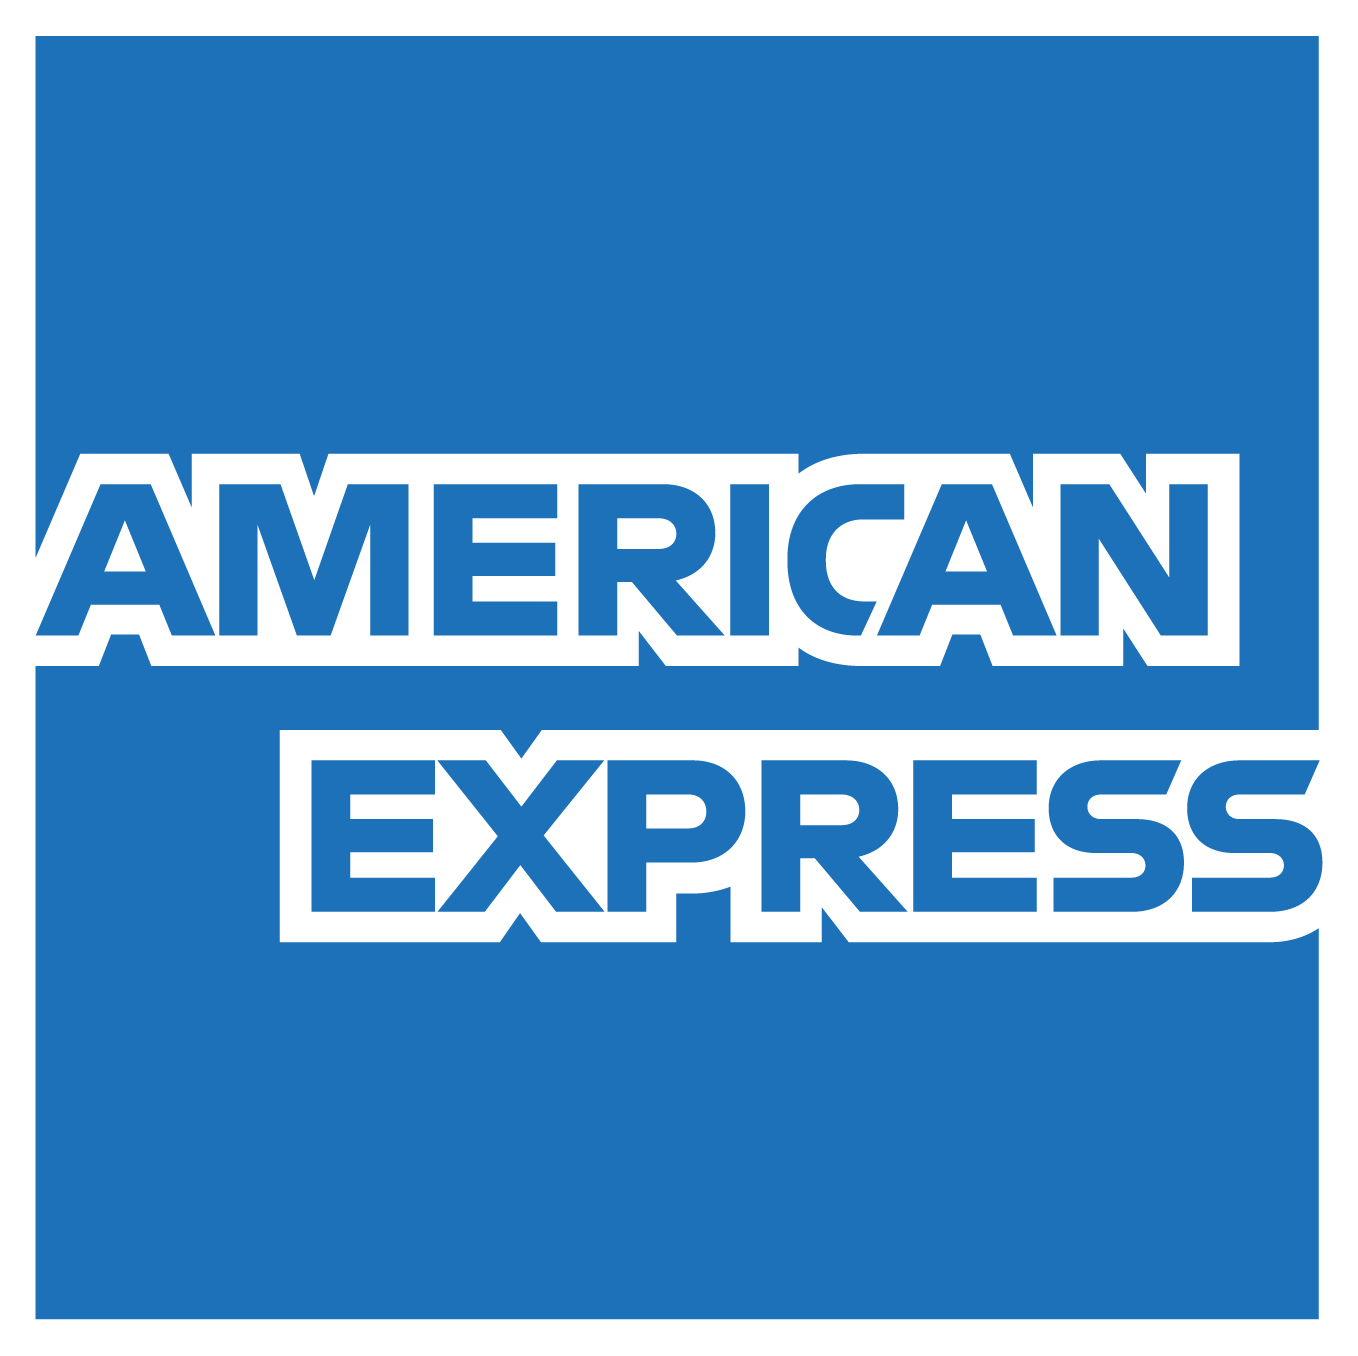 American Express Colors Html Hex Rgb And Cmyk Color Codes,Chair Mid Century Modern Upholstery Fabric